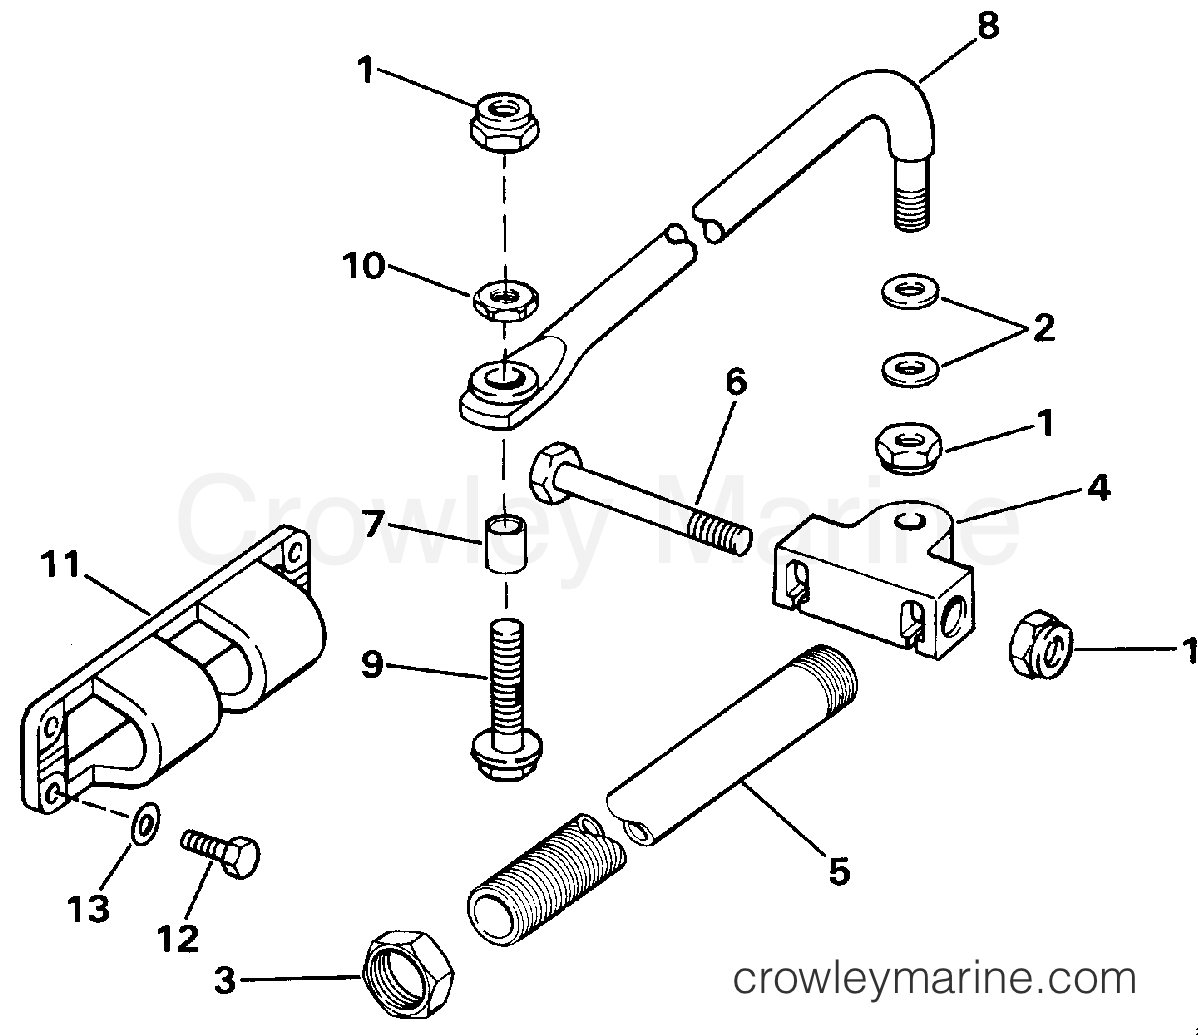 dual cable steering connector kit-parallel entry